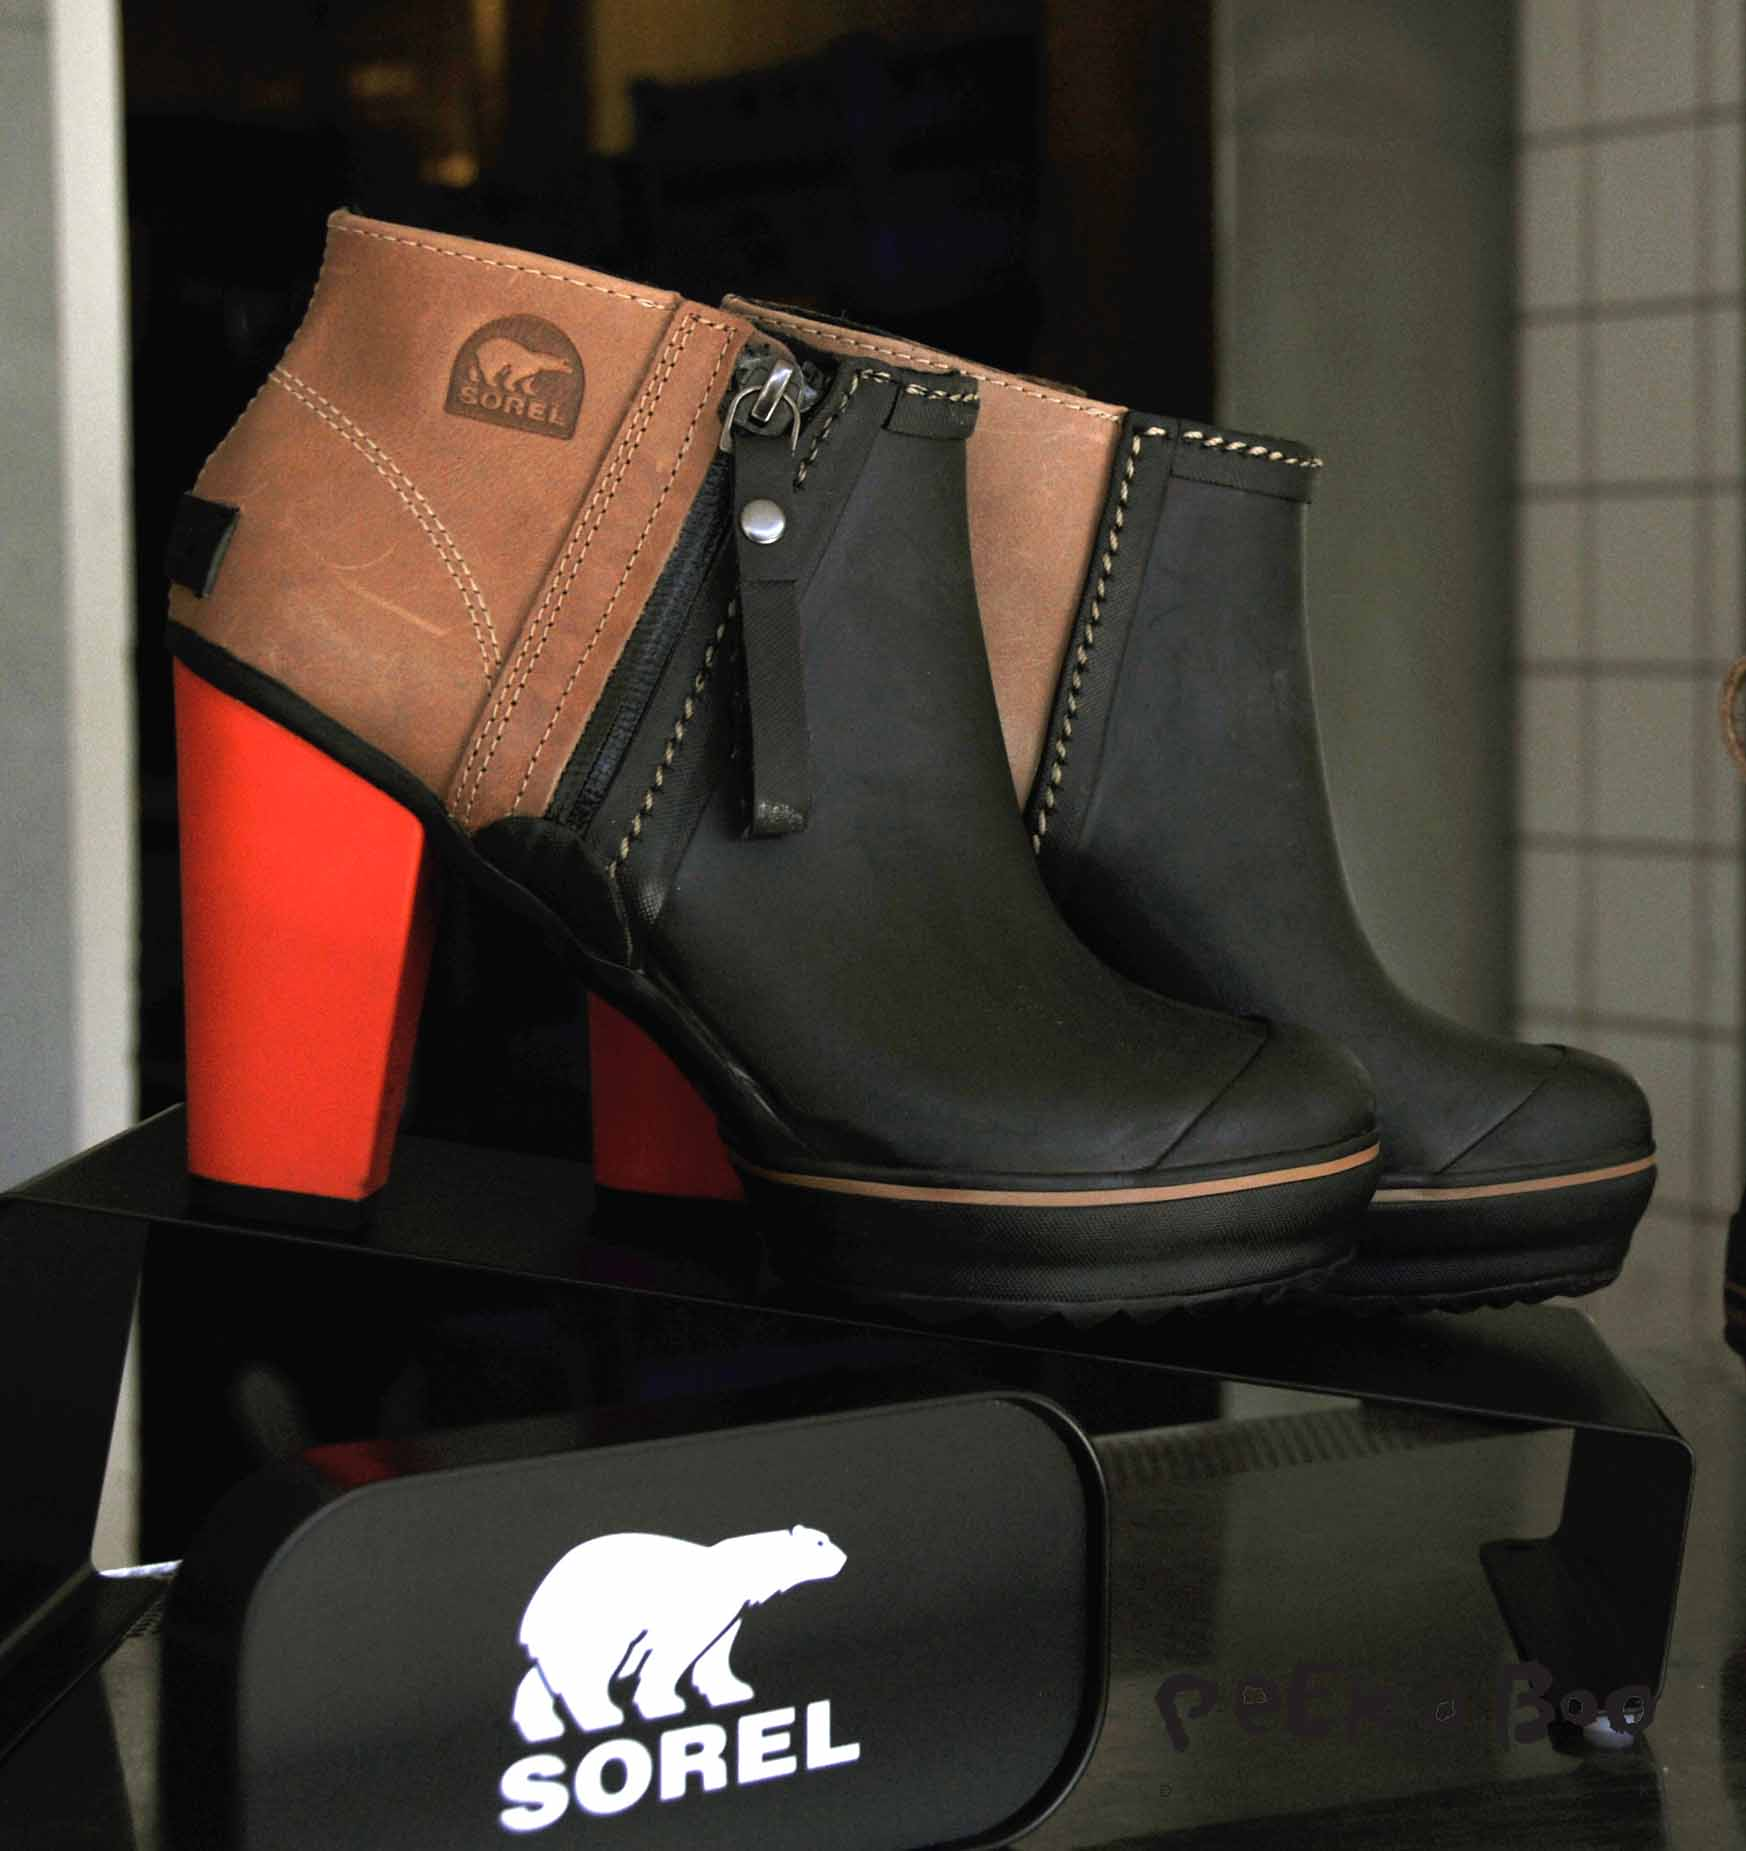 Sorel AW13 for rainy days.